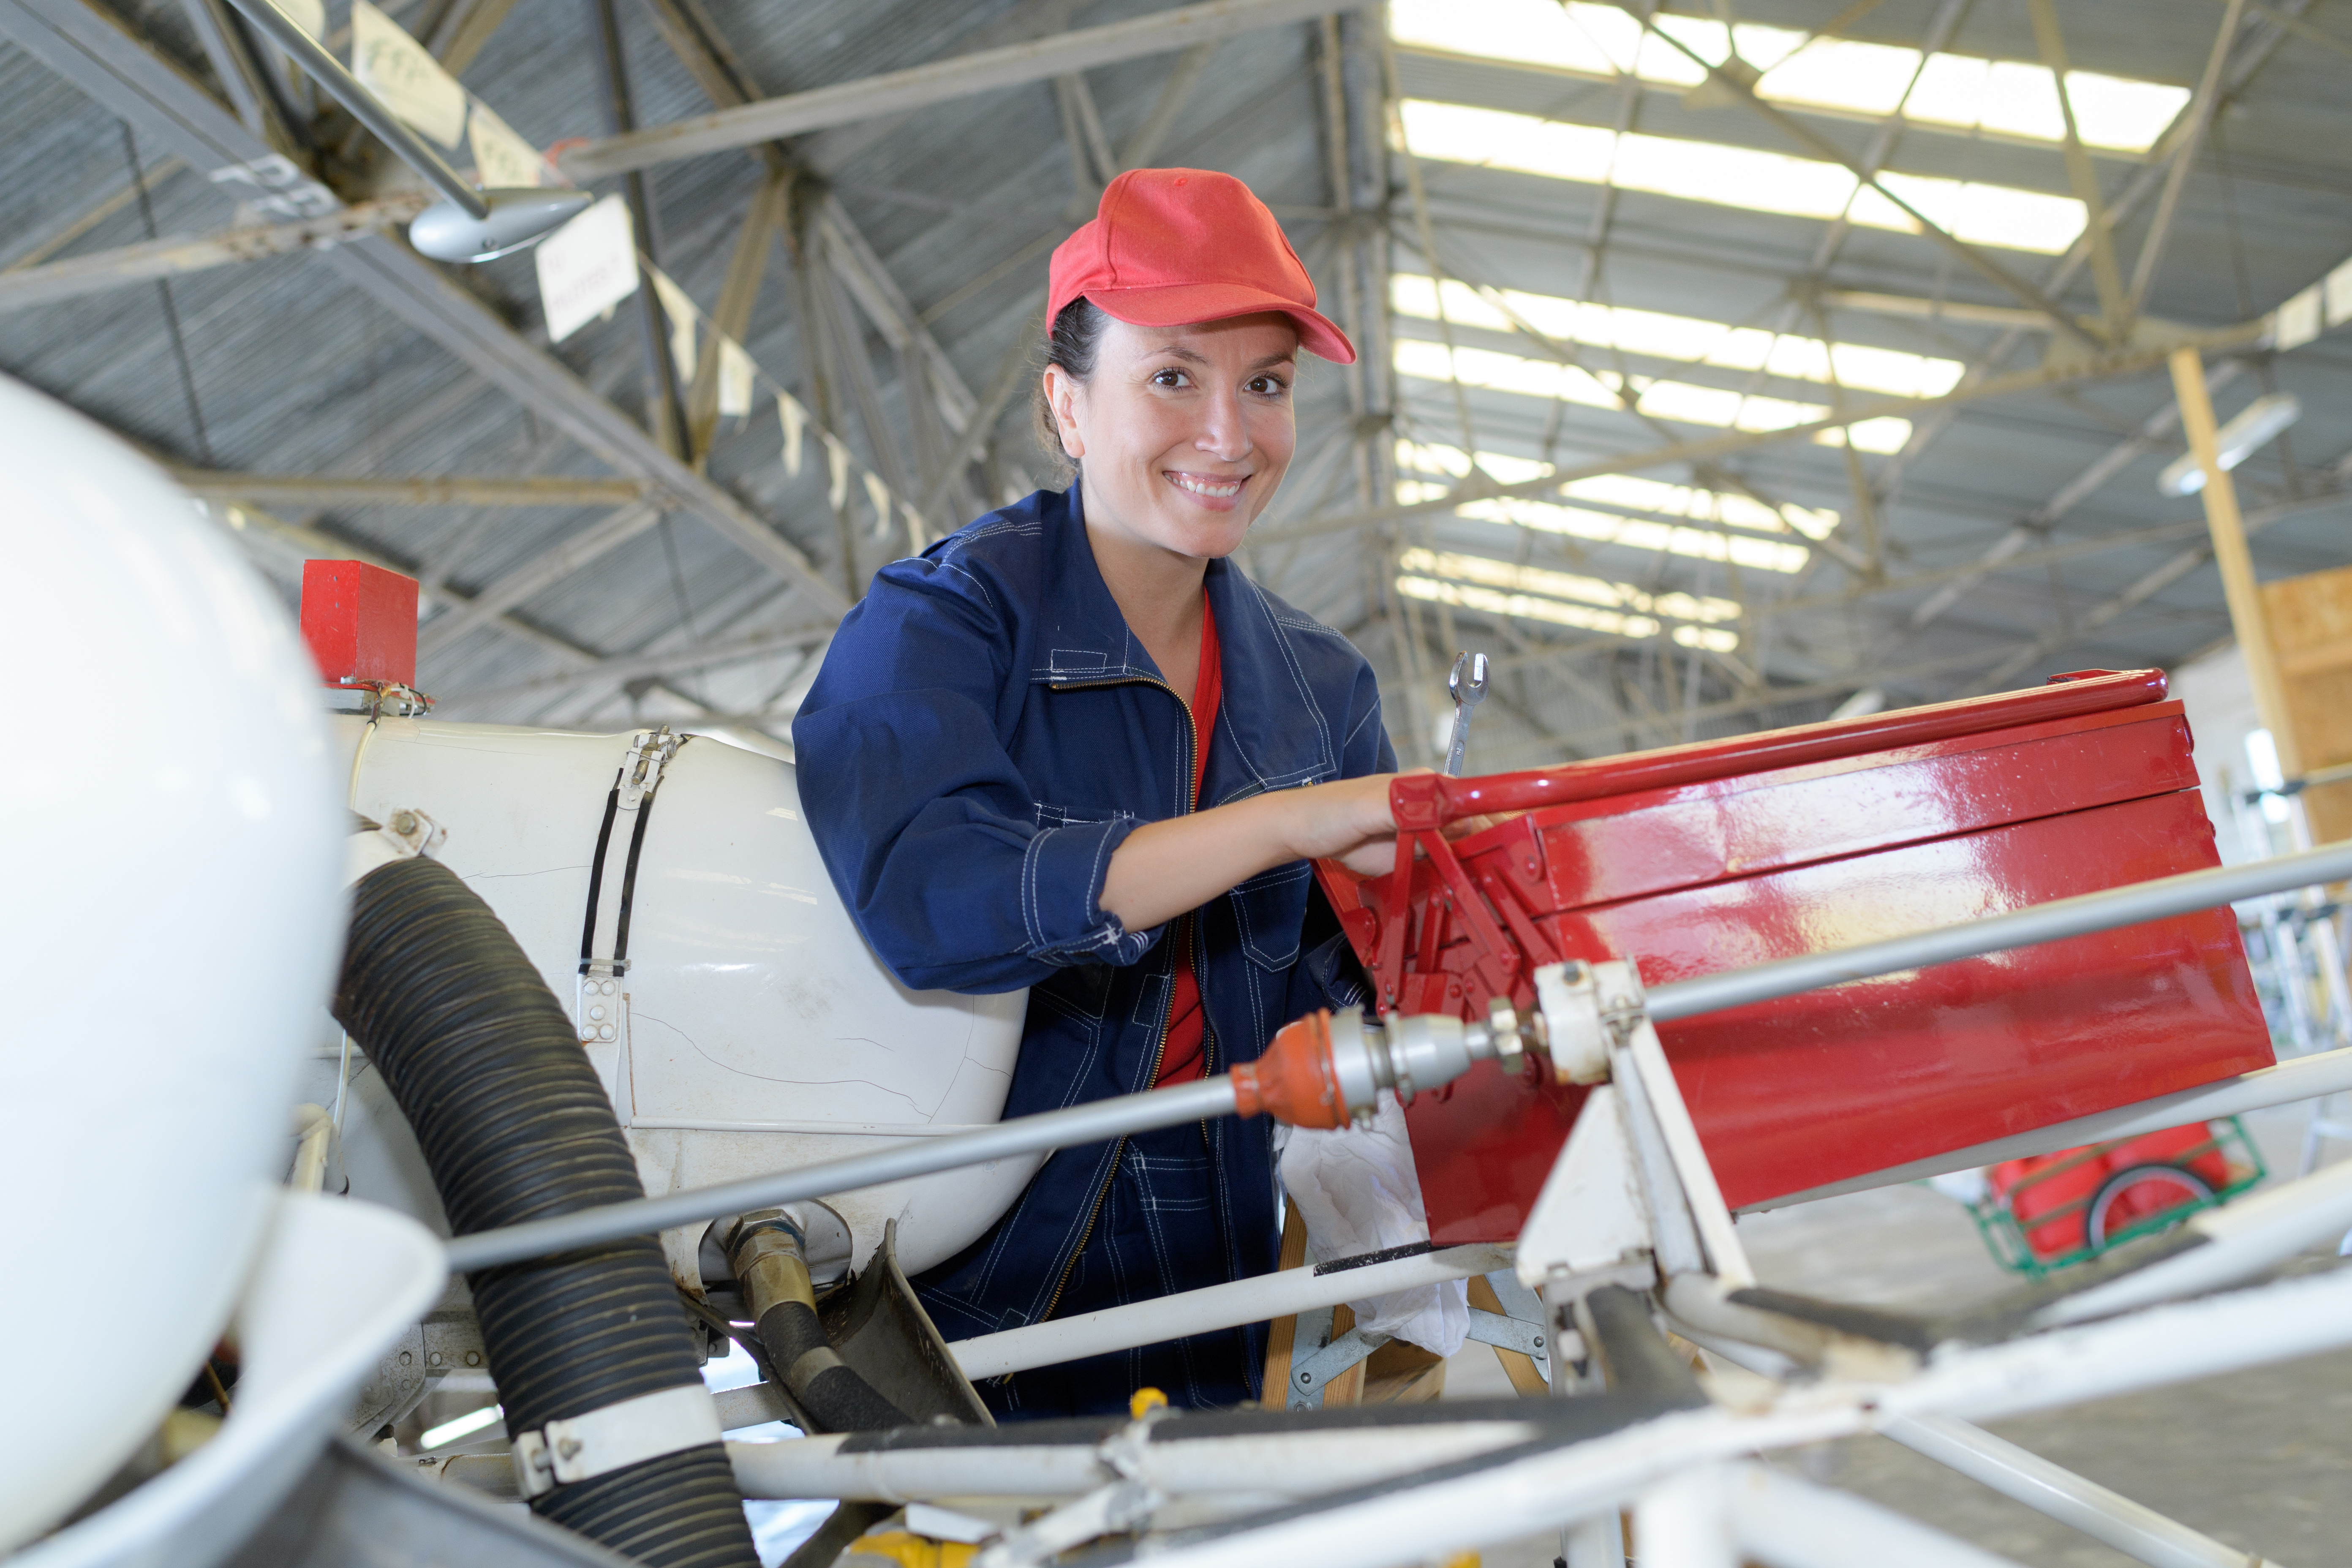 Gattaca joins Women in Aviation and Aerospace Charter